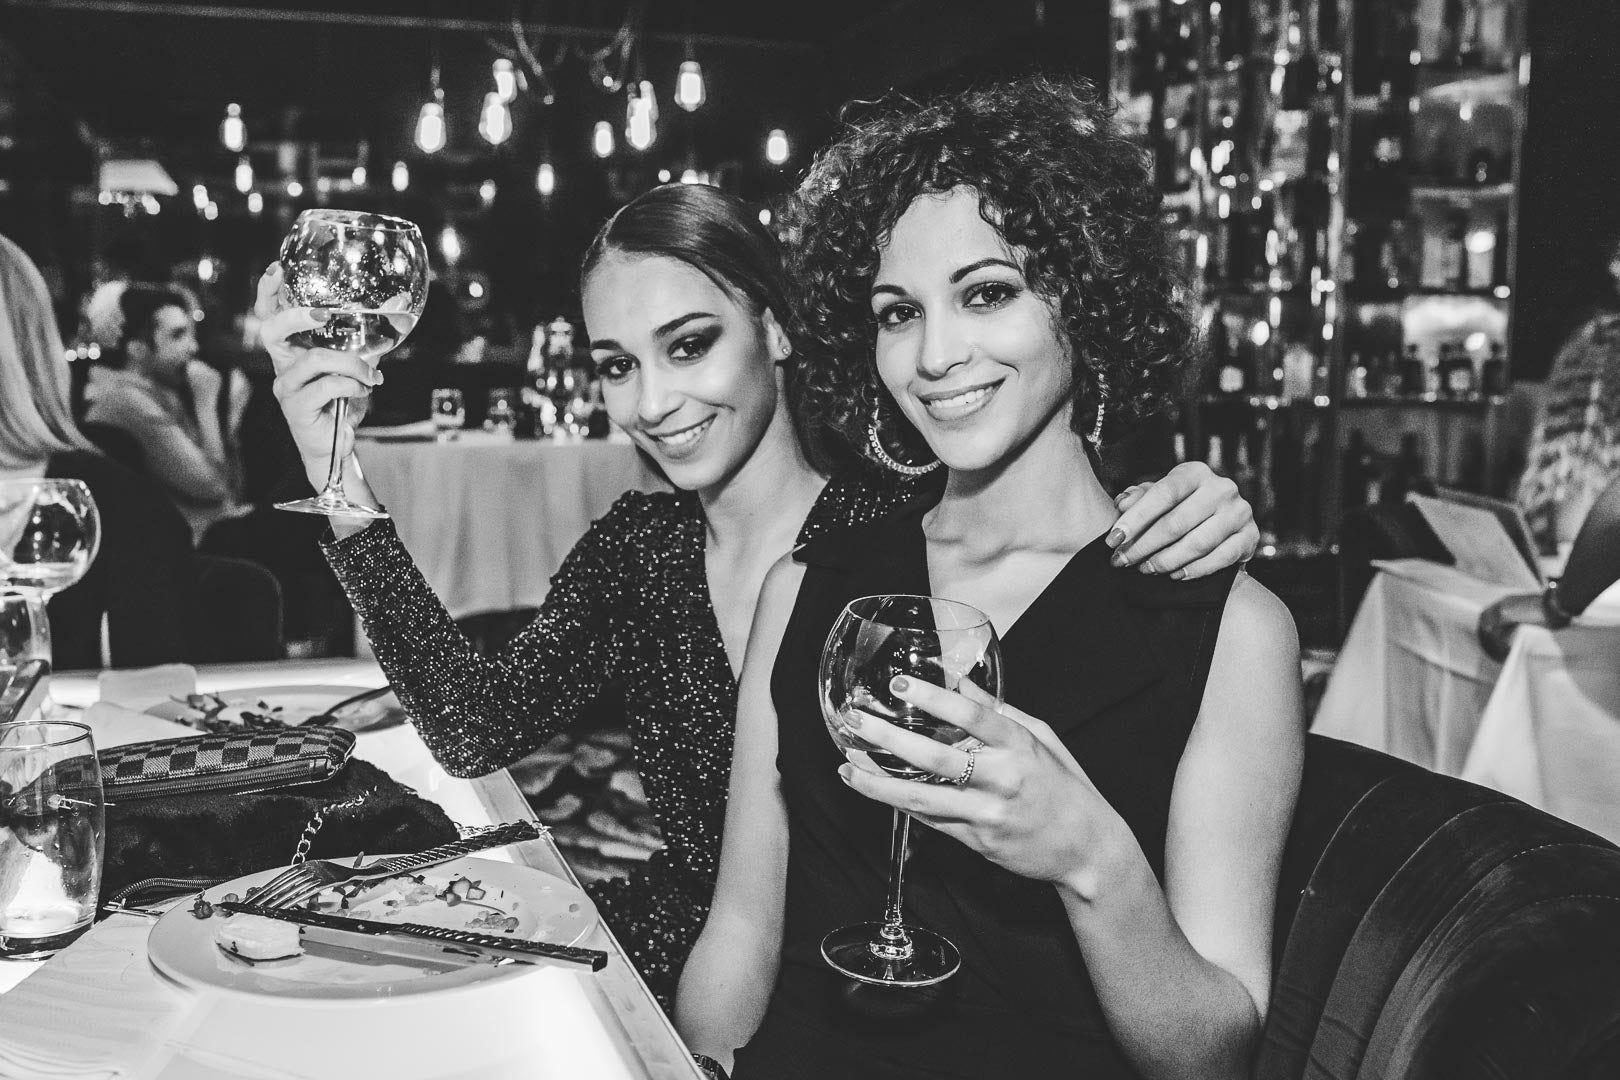 Miss Picardie and Miss Lorraine 2019 have a drink